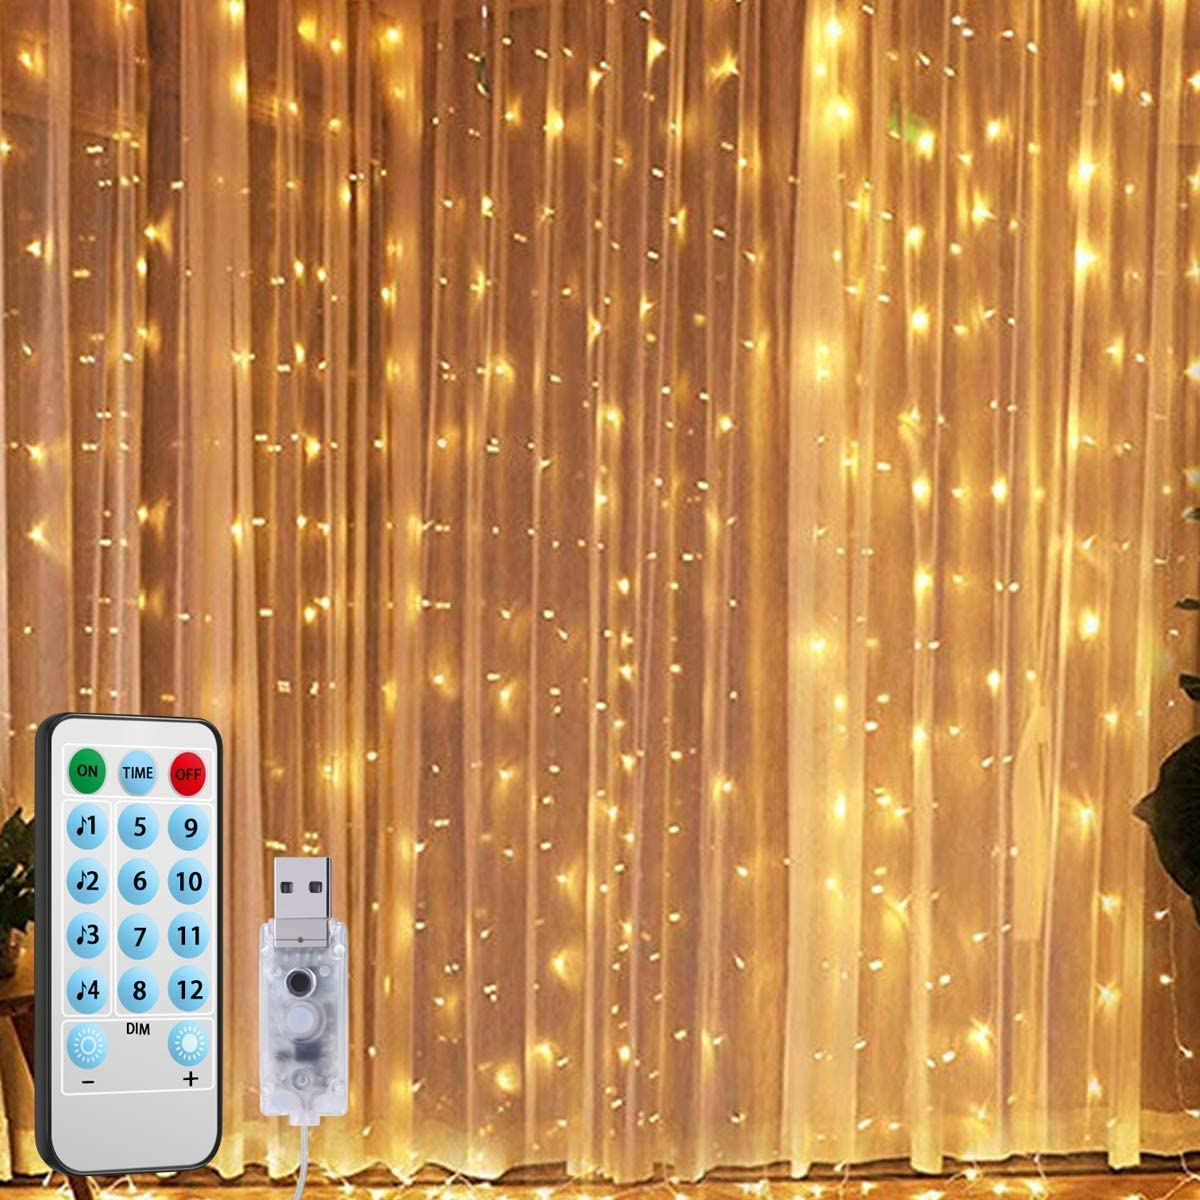 Amazon Com Amir Upgraded Window Curtain String Lights Sound Activated Function Can Sync With Any Voice 9 8 Ft 300 Led Usb Powered Room Decor Lights Wedding Party Birthday Christmas Halloween Decorations Home Improvement